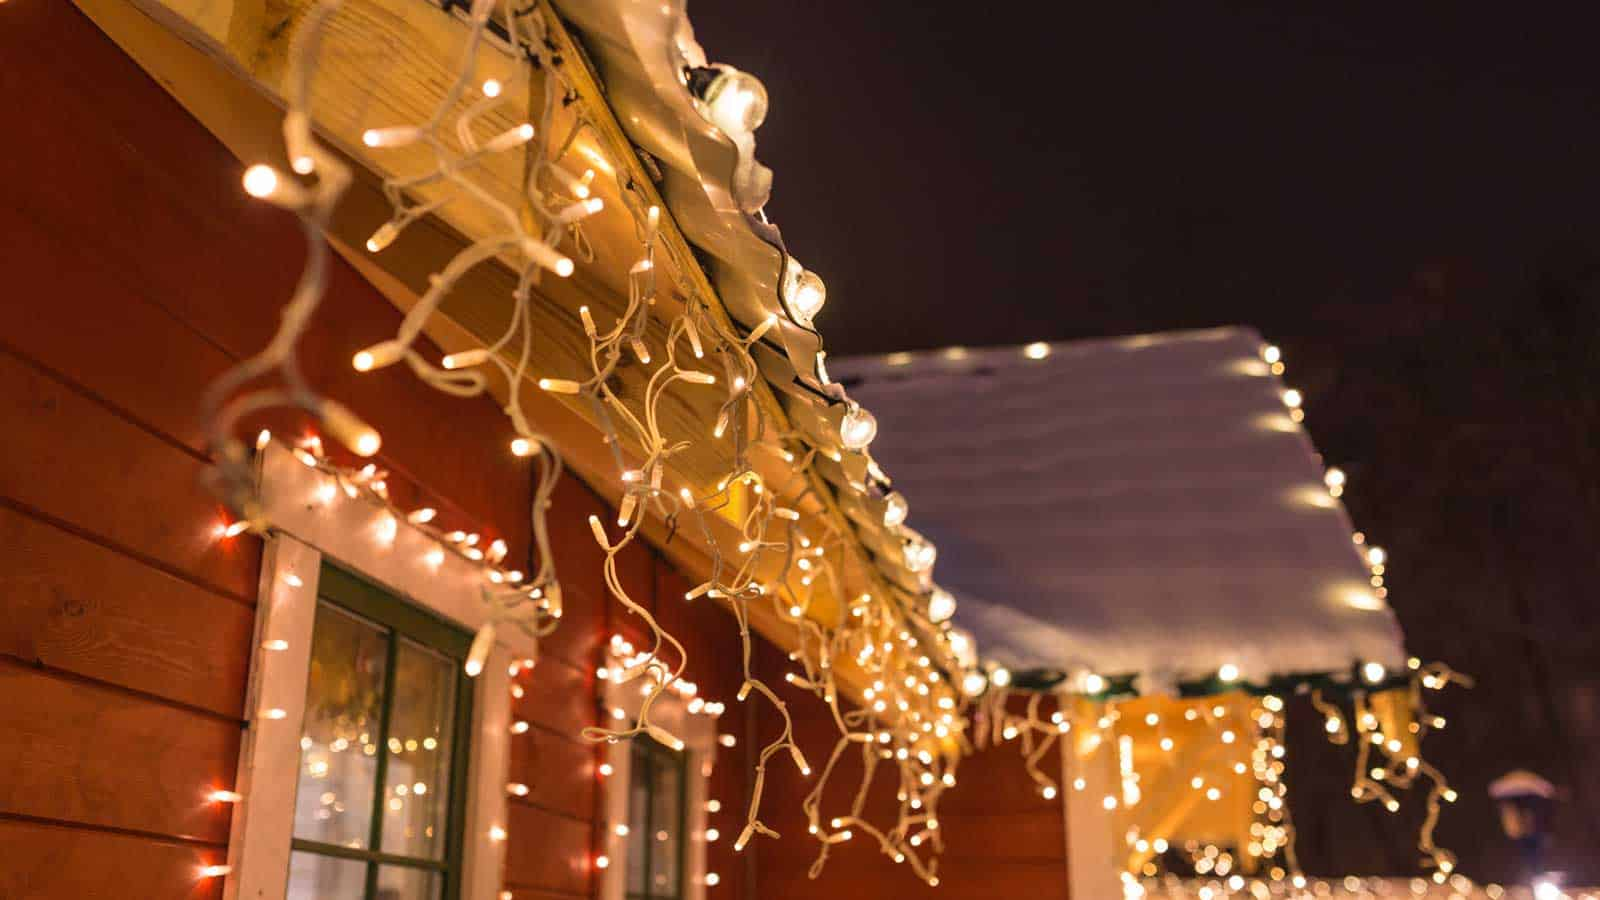 We love the bright lights, but don't damage your roof in the process! Here are our light hanging tips.